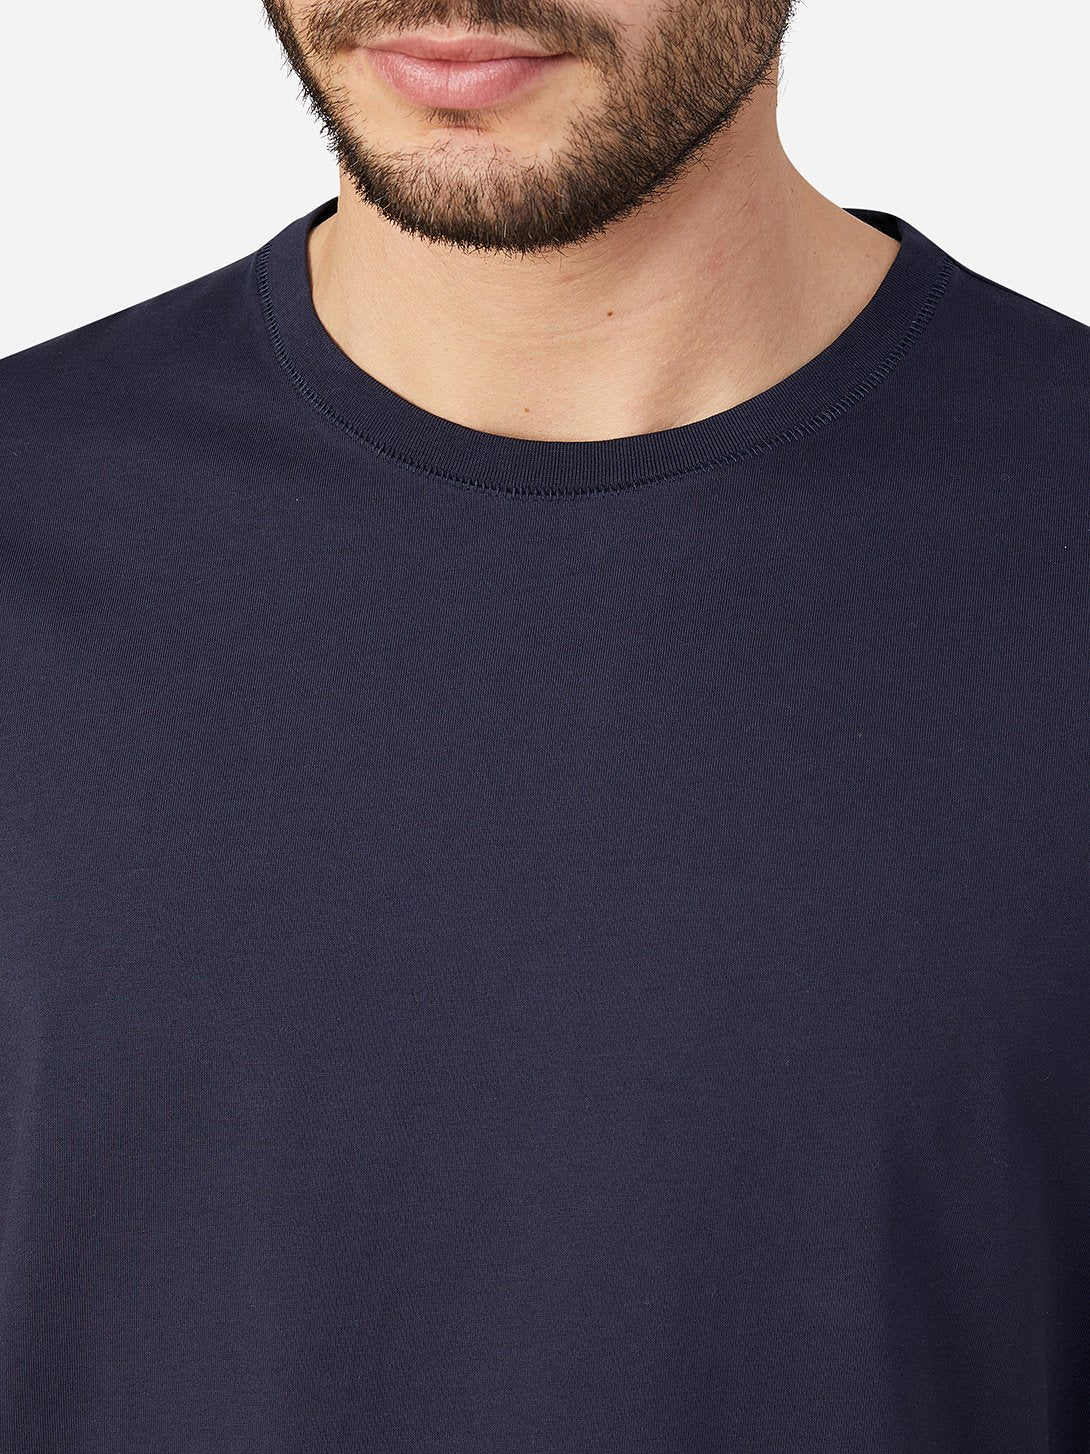 NAVY t shirts for men village crew neck tee ons clothing